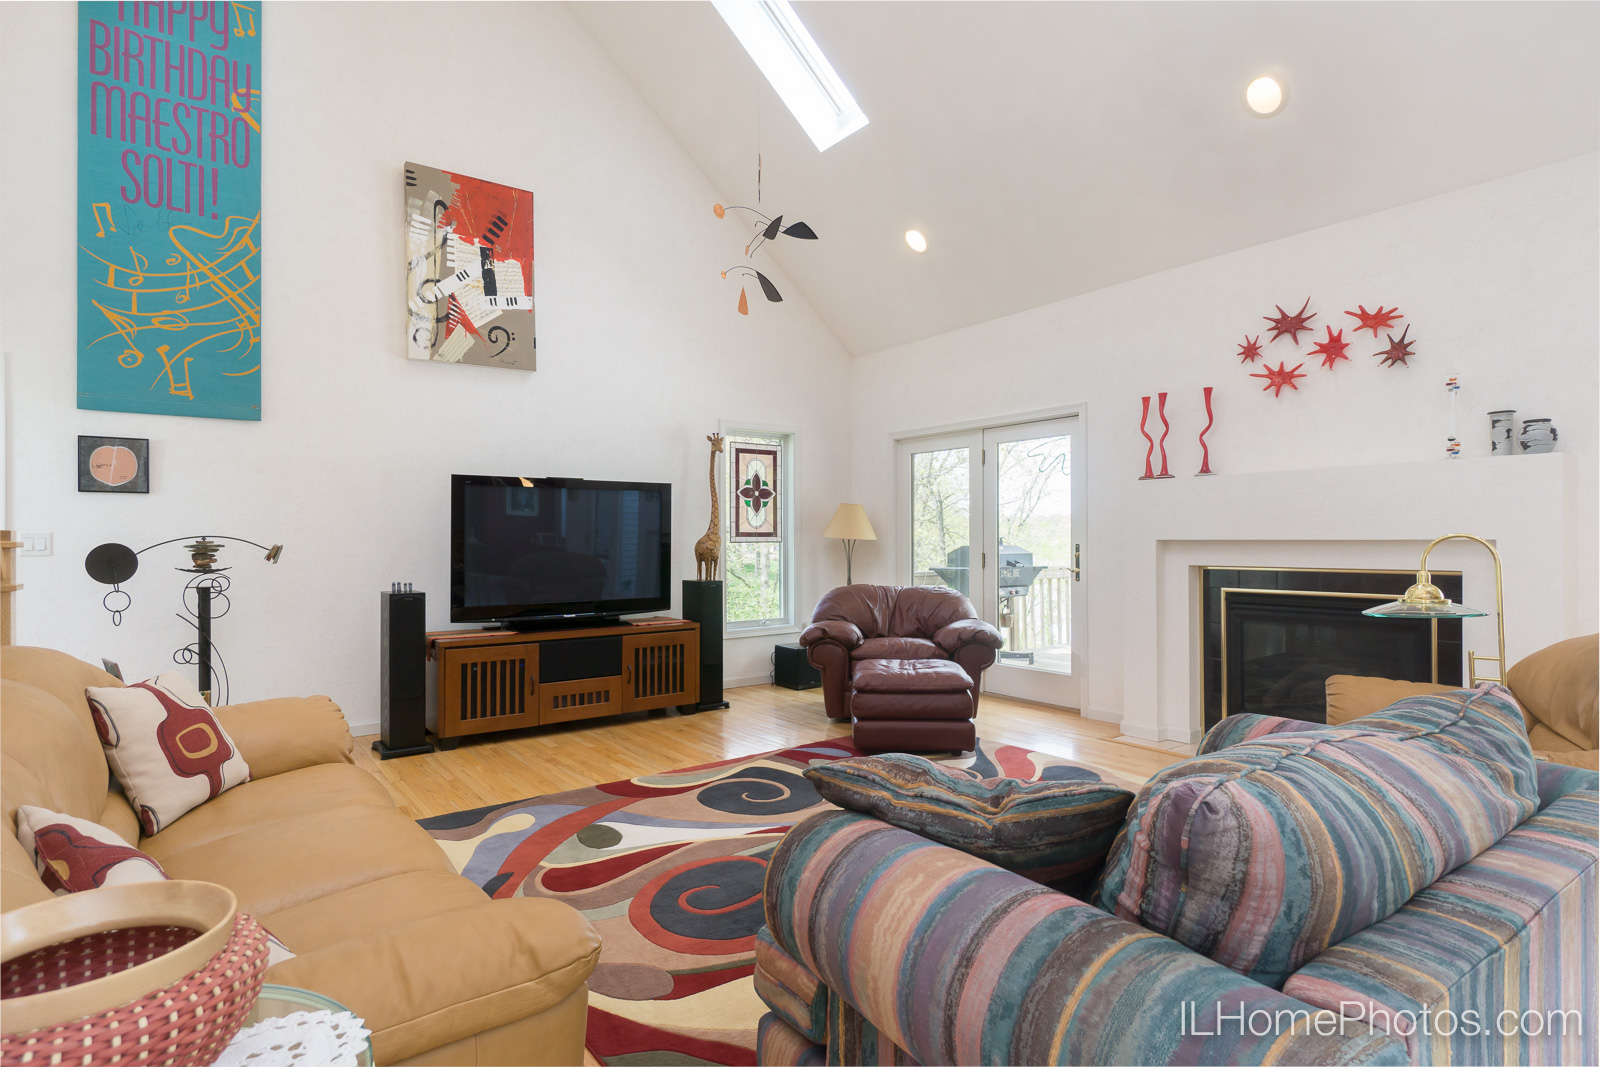 Interior living room photograph for real estate in Pekin/Peoria :: Illinois Home Photography by Michael Gowin, Lincoln, IL